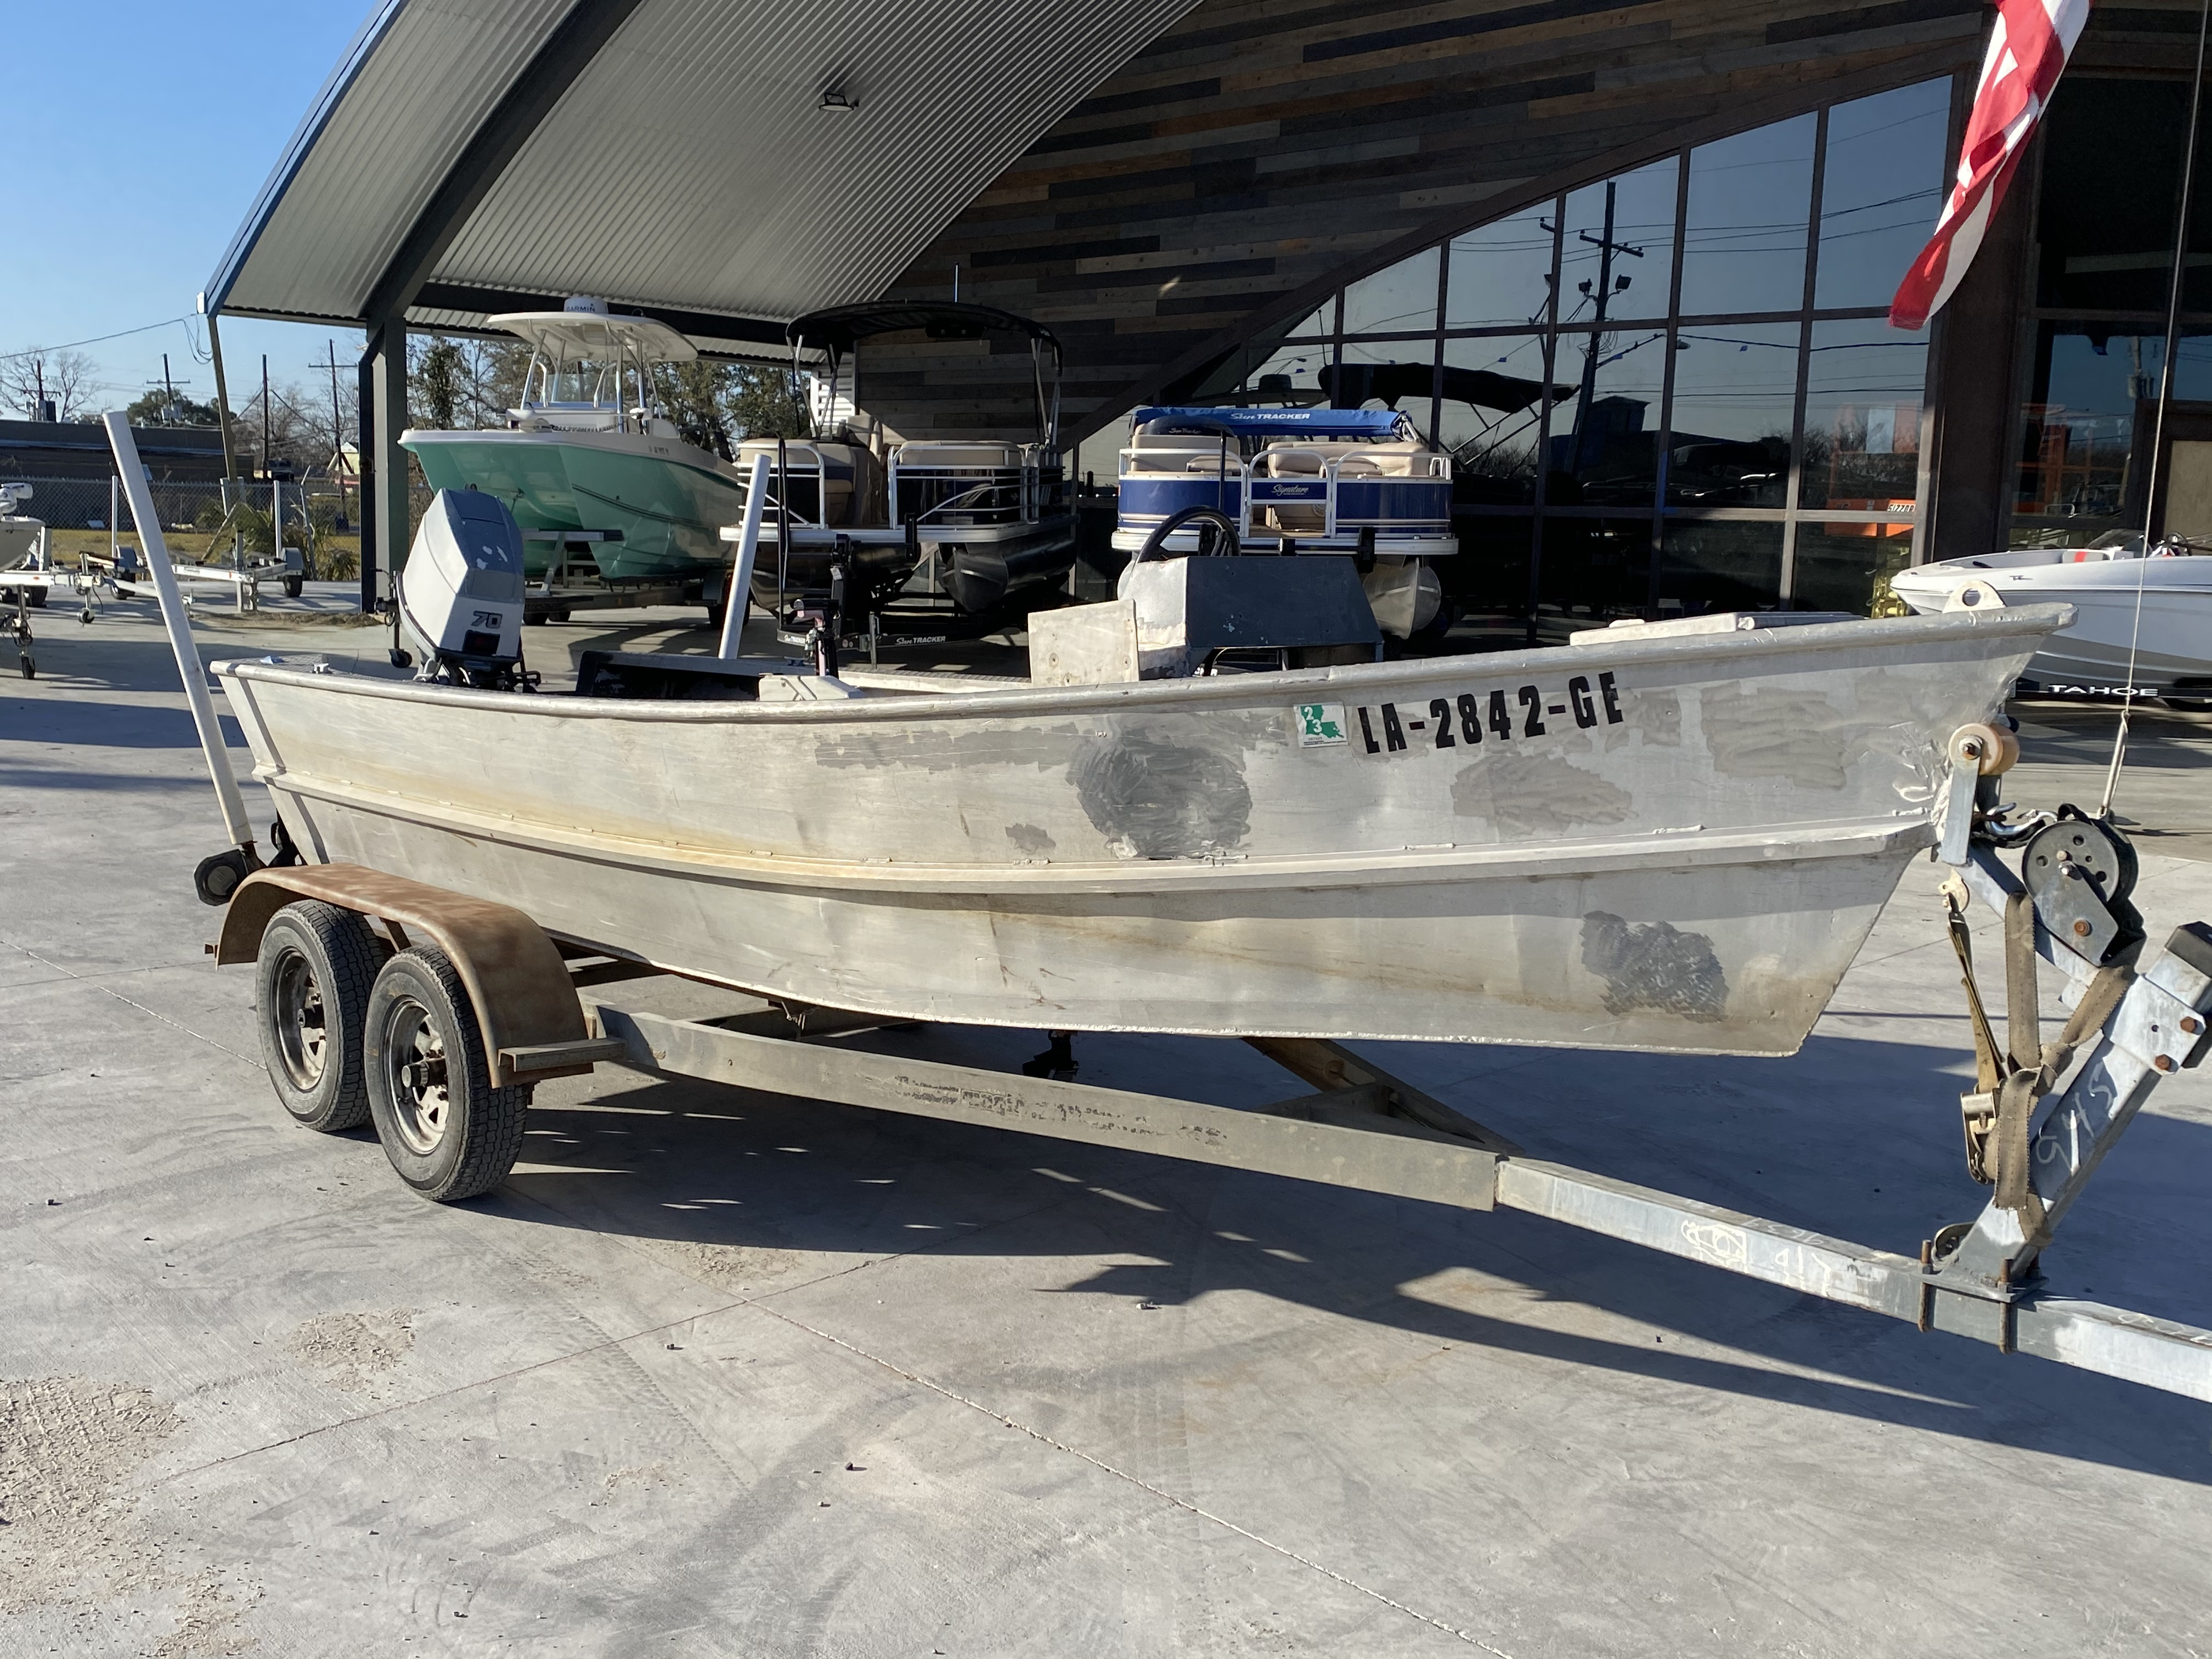 1993 Gravois boat for sale, model of the boat is 17 Skiff & Image # 2 of 8